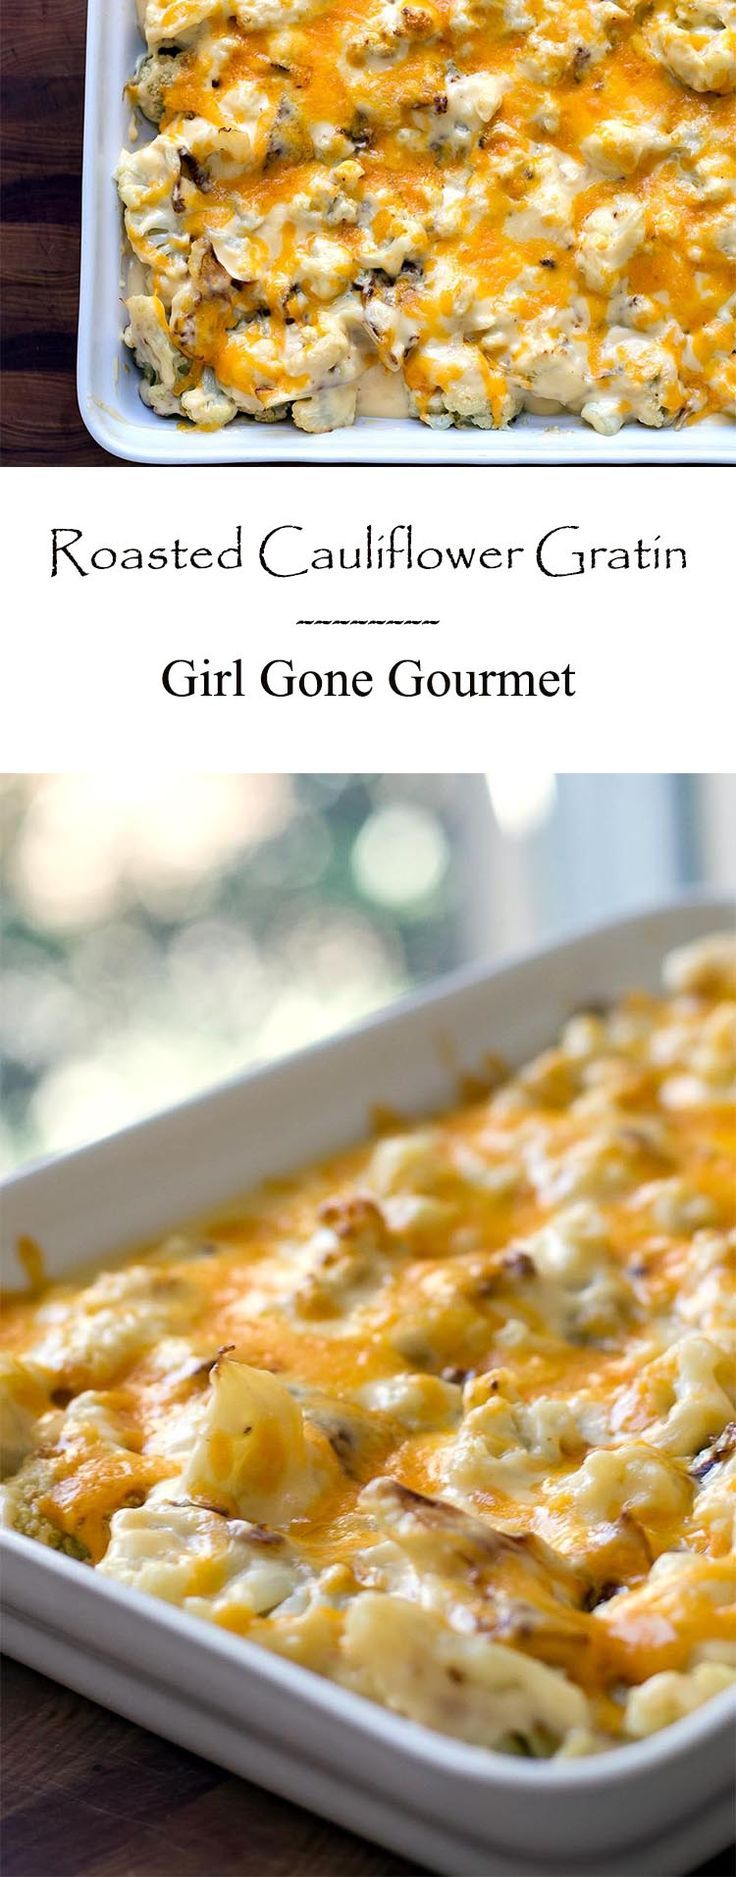 This creamy, cheesy gratin starts with a simple bechamel sauce - it's comfort food heaven!   girlgonegourmet.com